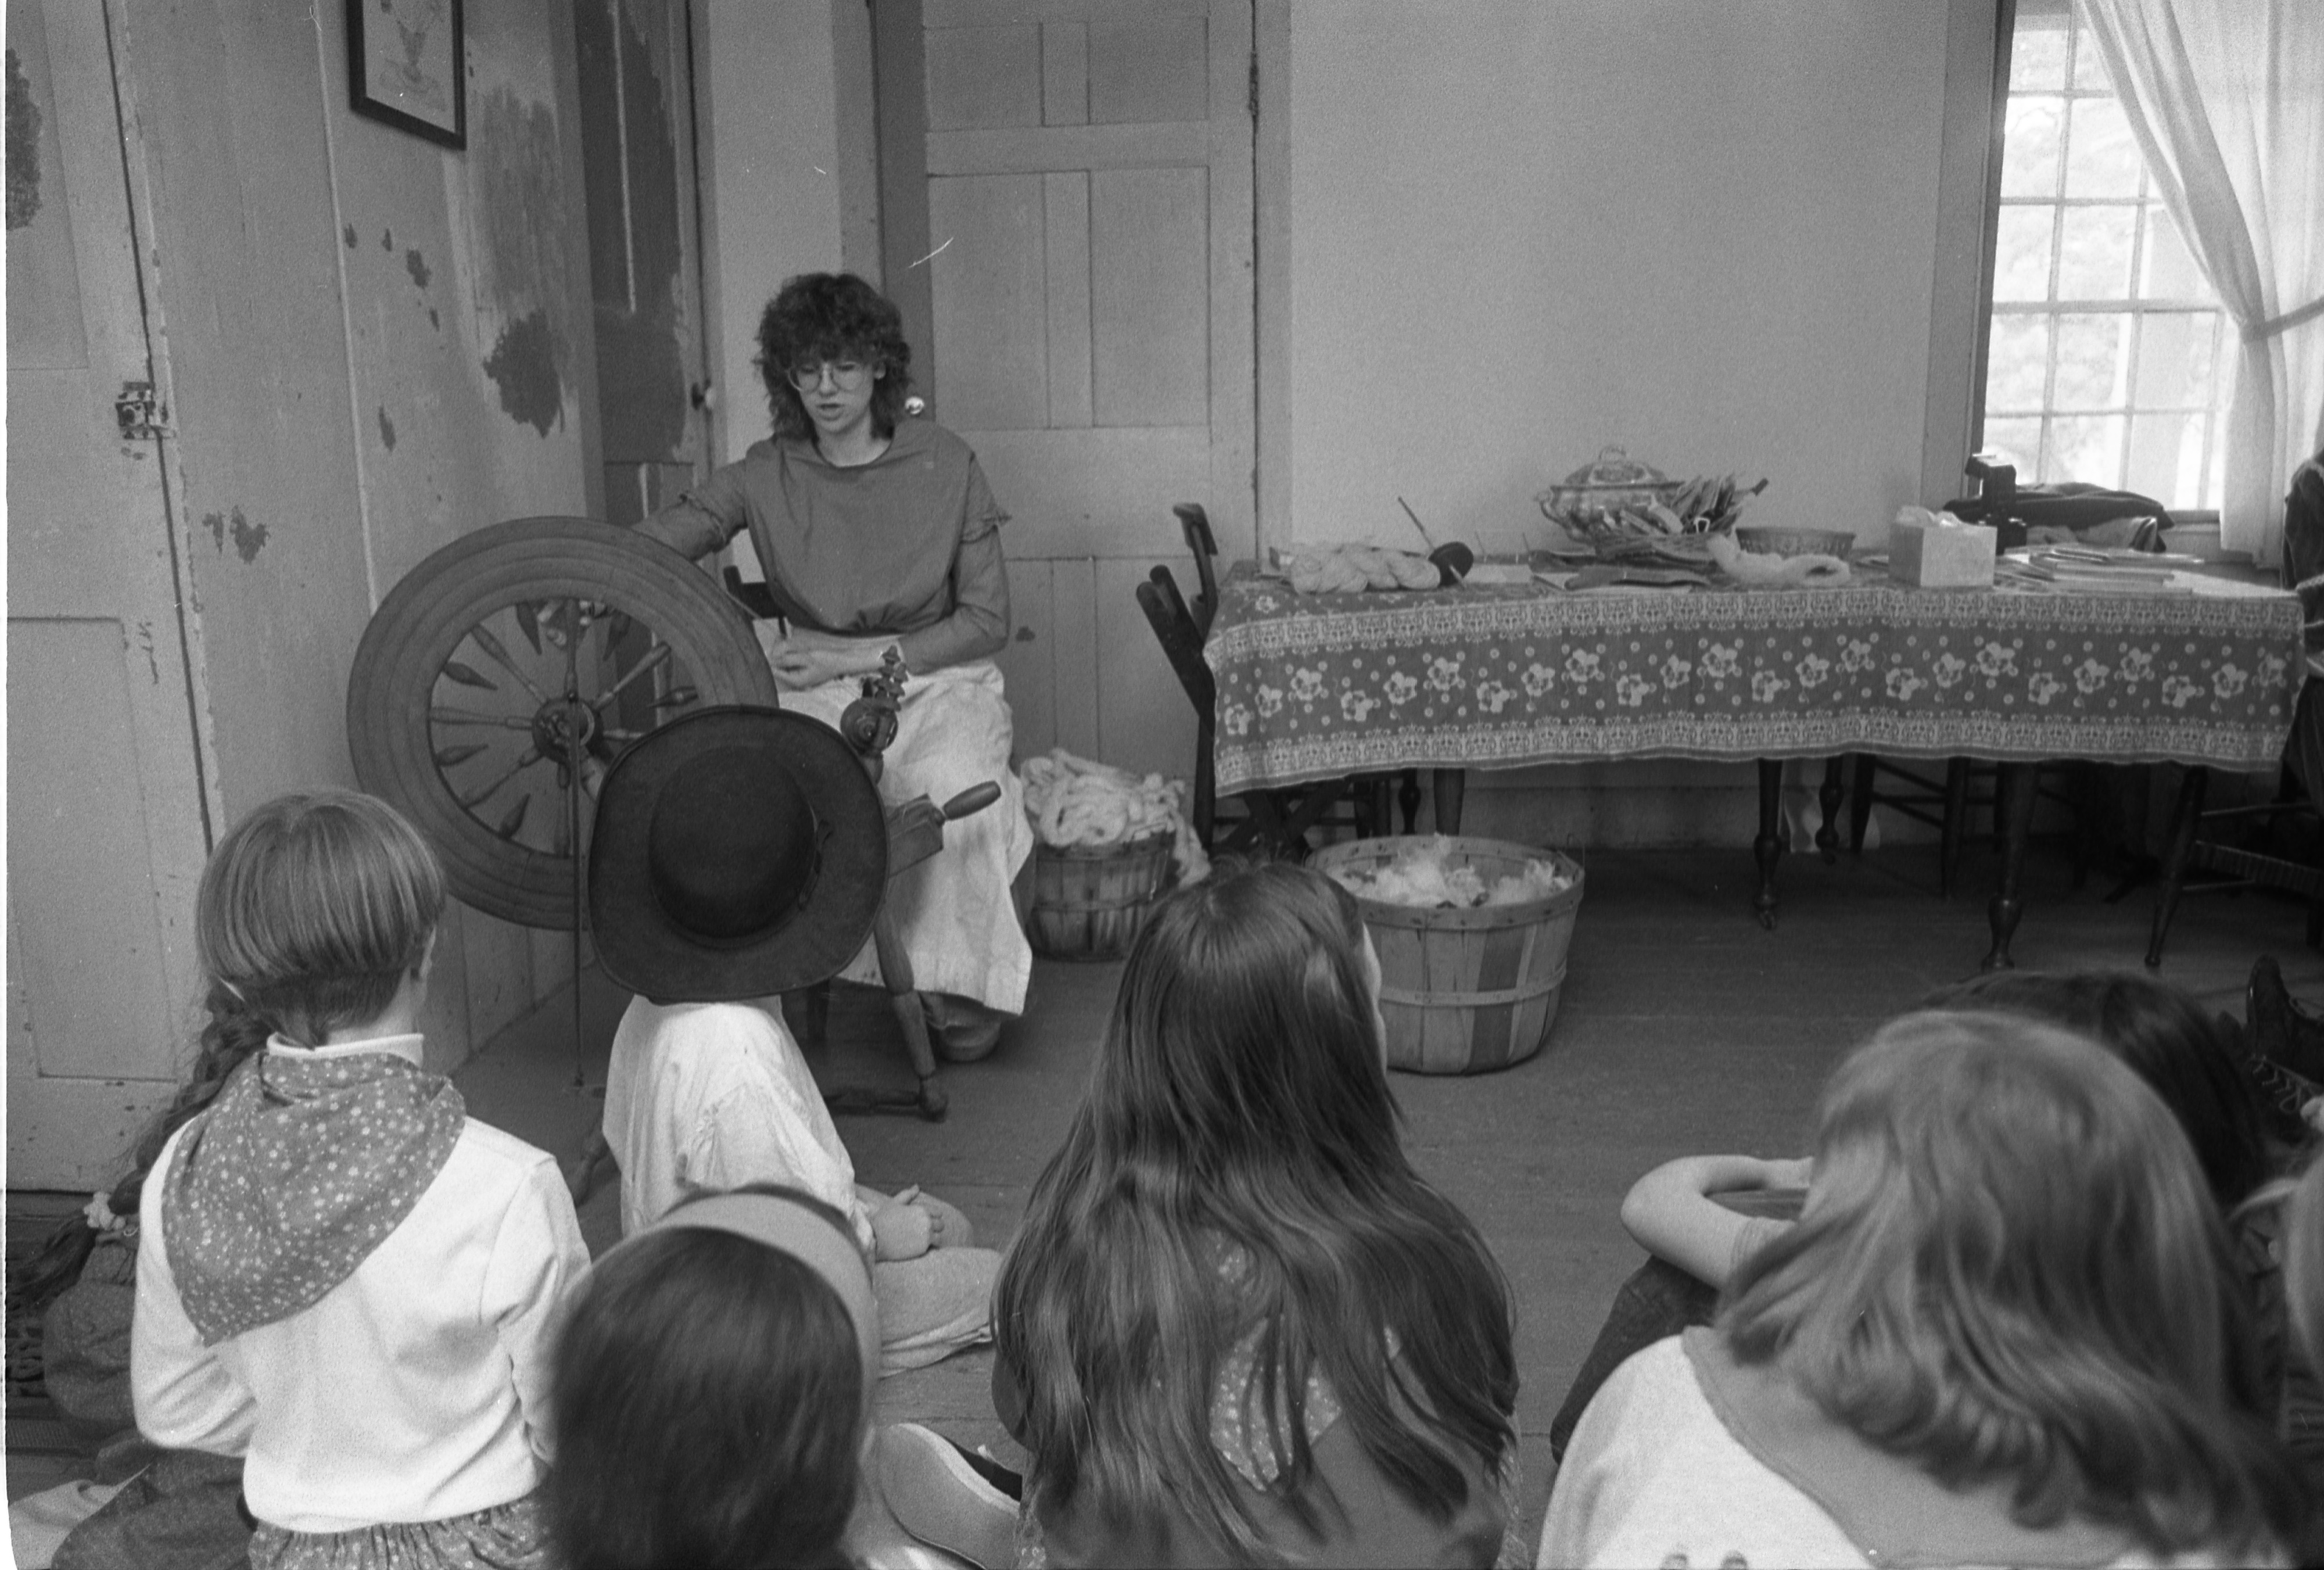 Children Learn About Spinning Wool At Pioneer Living Day Camp At Cobblestone Farm, April 1992 image